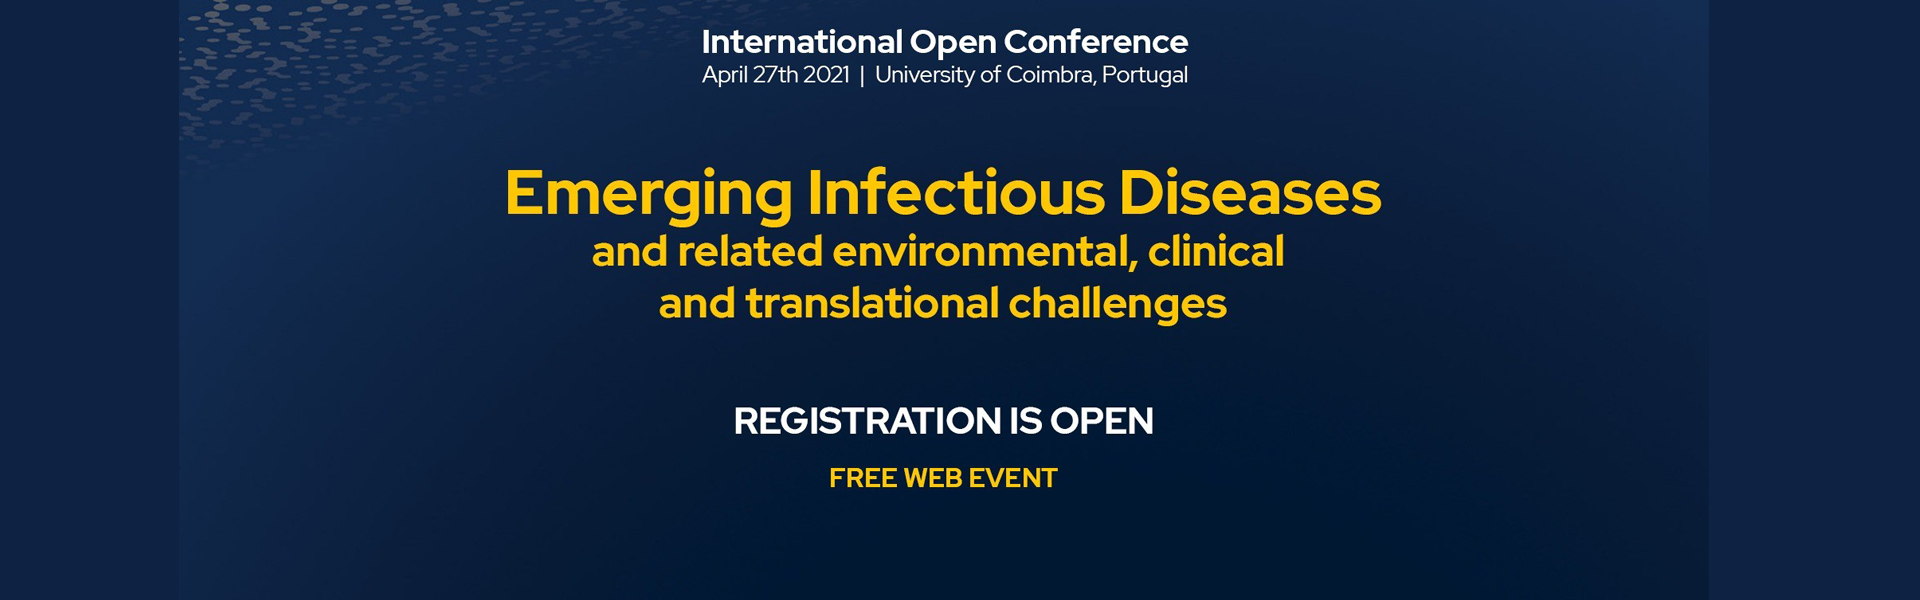 Emerging Infectious Diseases and related environmental, clinical and translational challenges